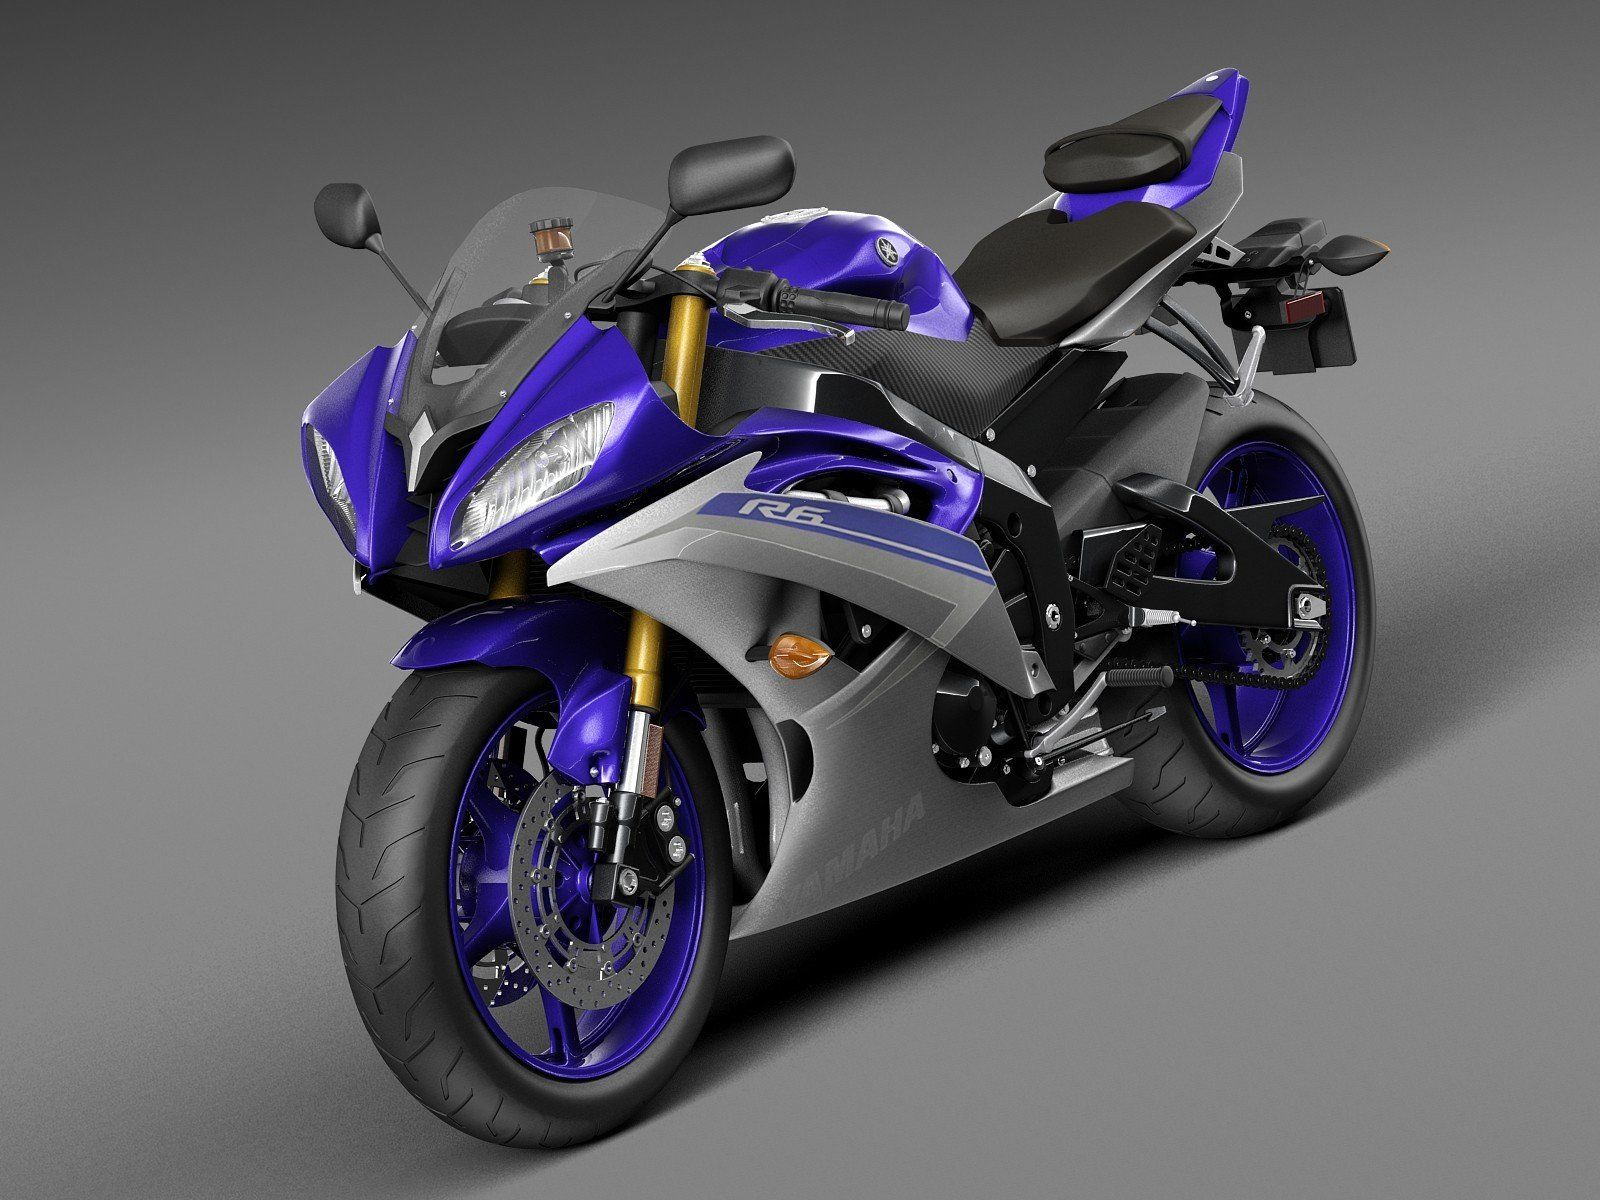 2012 yamaha yzf r6 reviews prices and specs review ebooks - Yamaha Yzf R6 2015 Valerii Sendetskyi On Artstation At Https Www